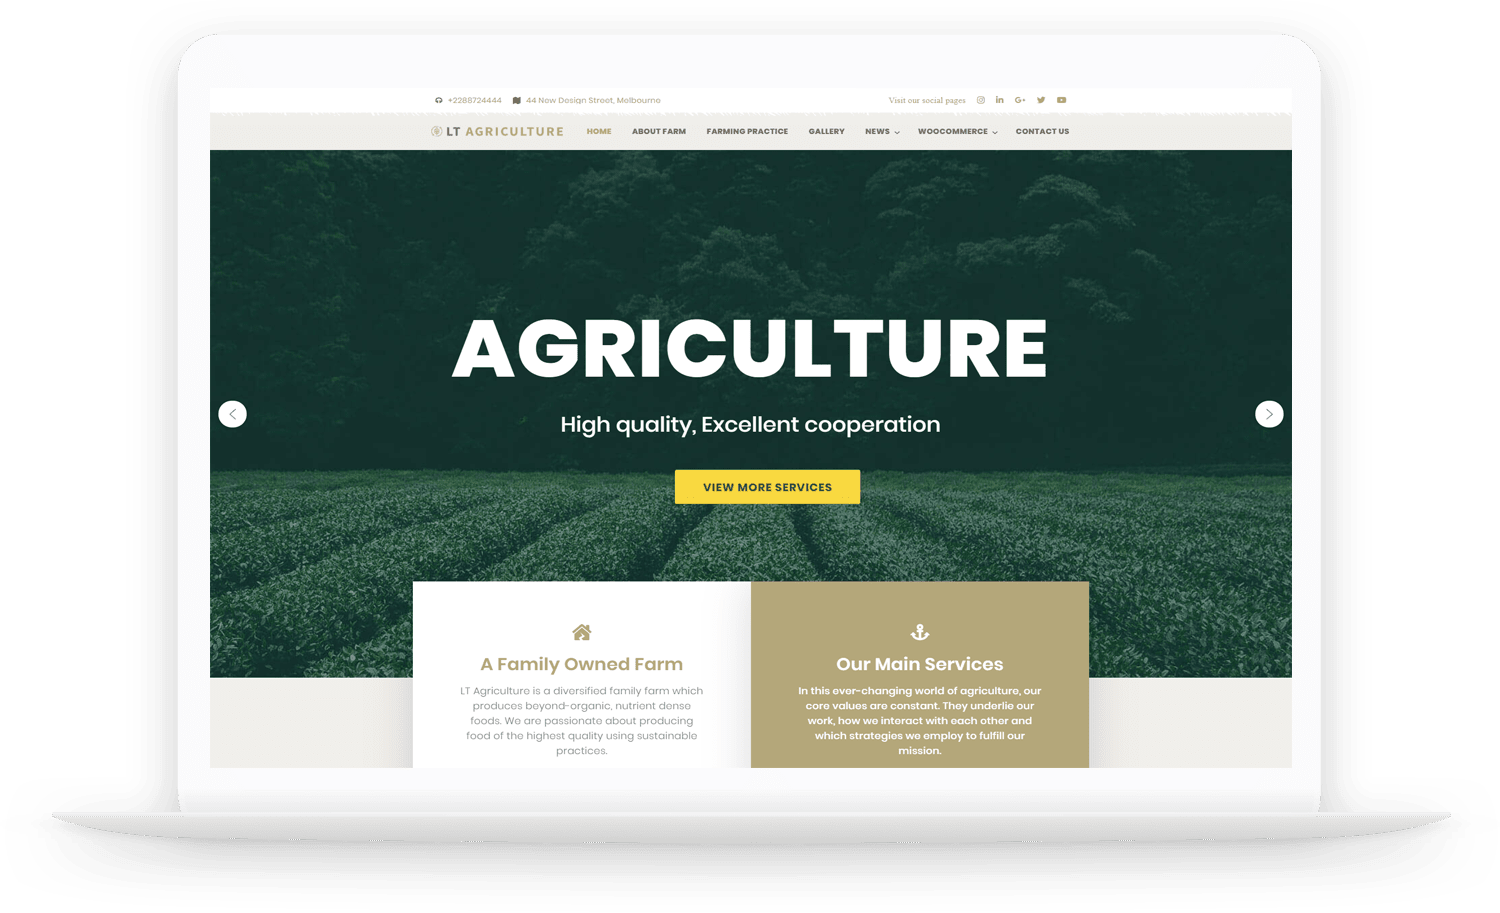 LT-Agriculture